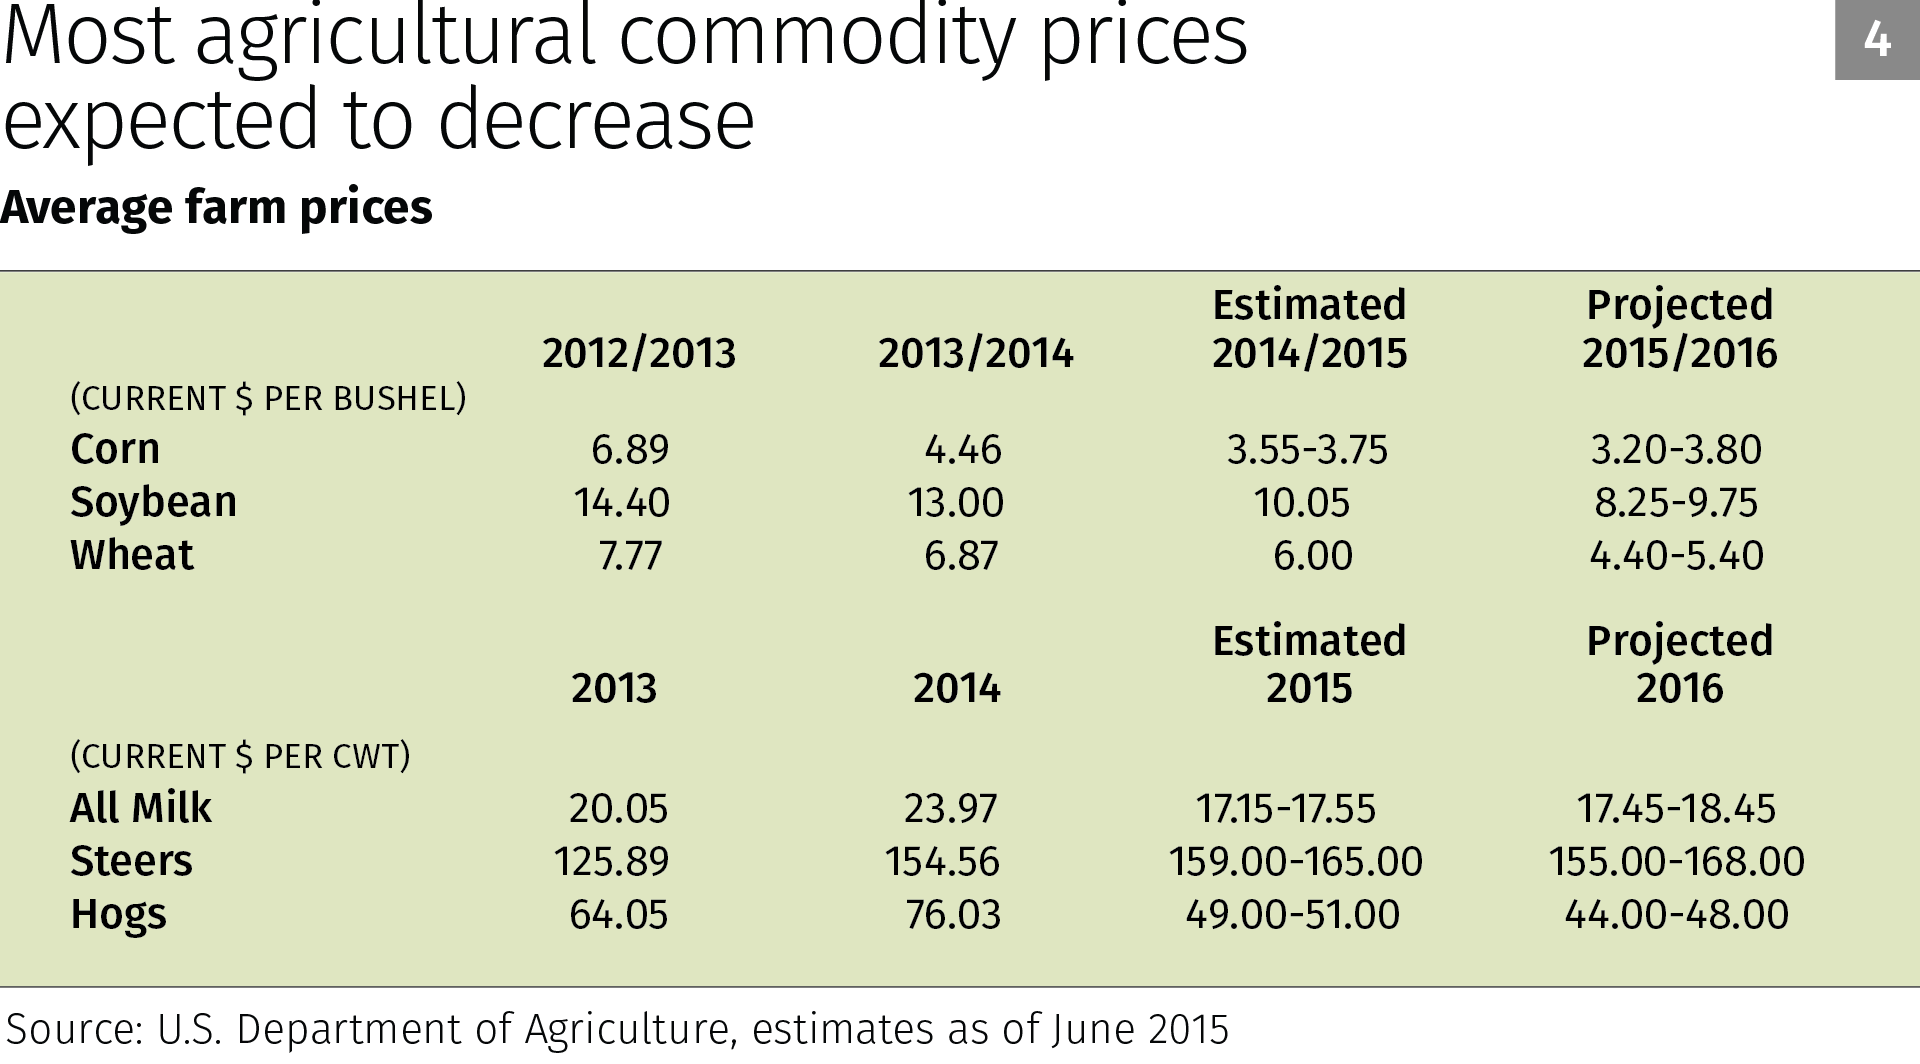 Chart 4: Most agricultural commodity prices expected to decrease